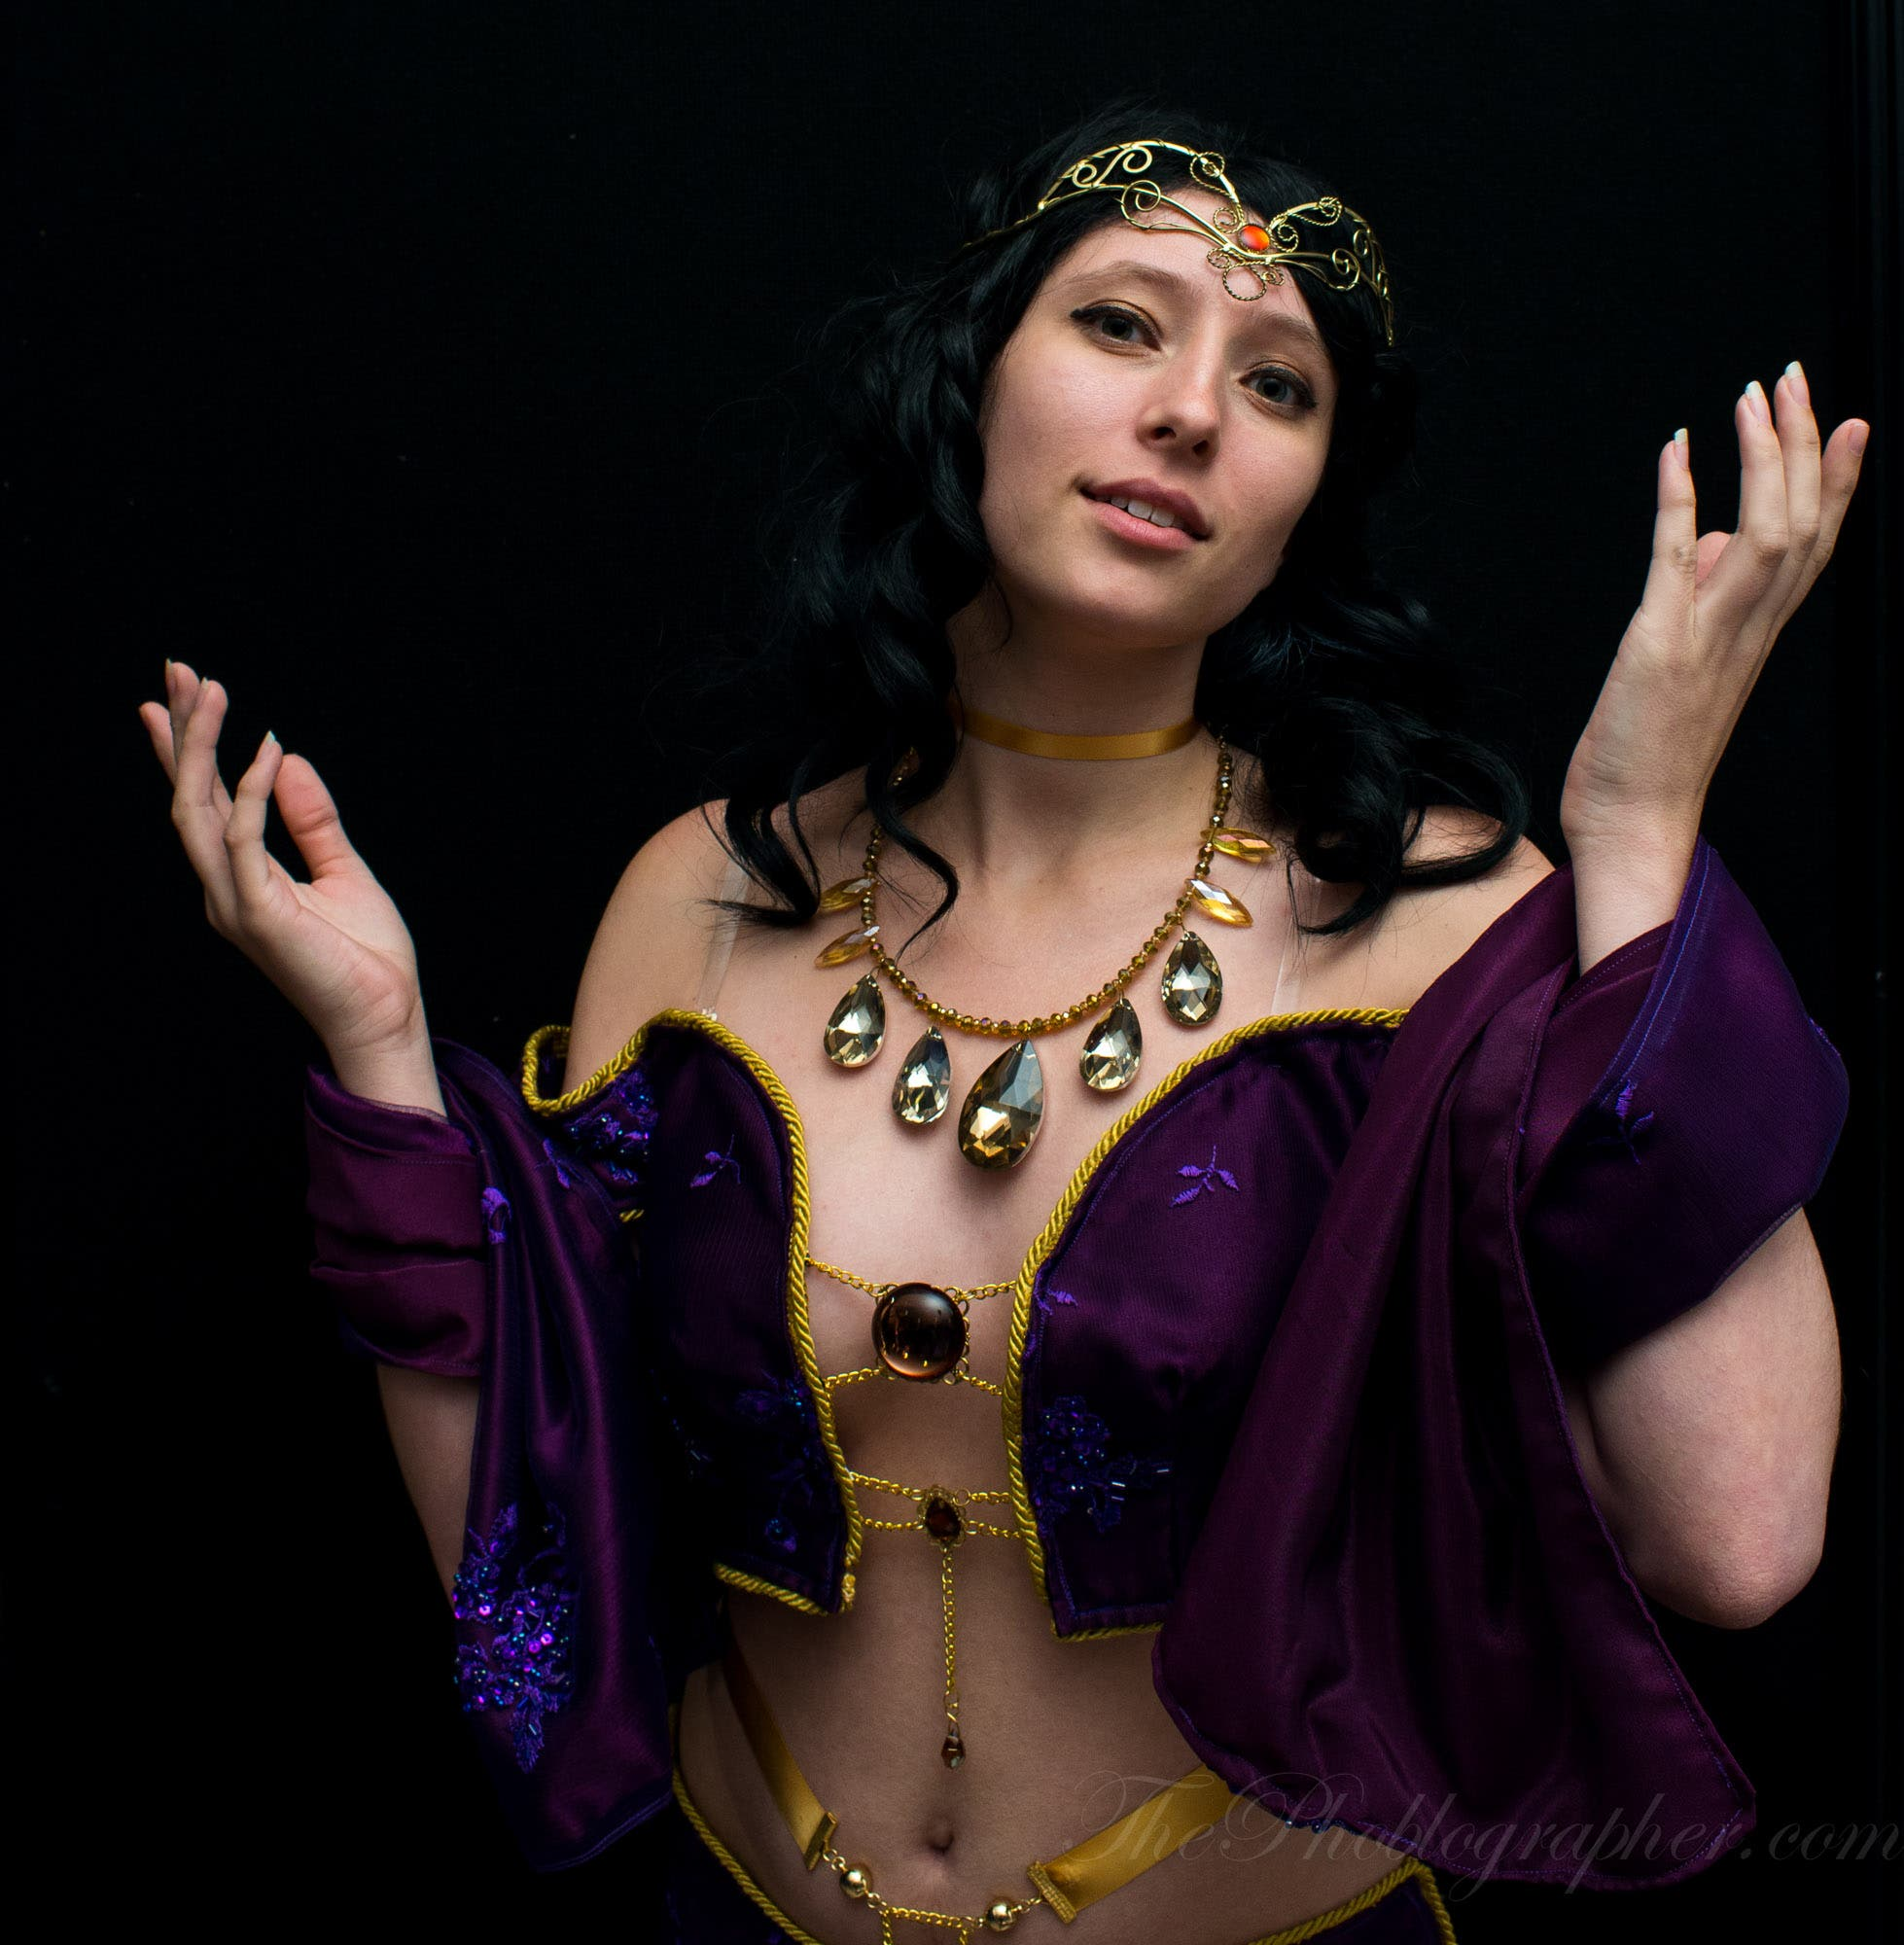 Cosplay is not Consent: A Reminder to the Photography Community